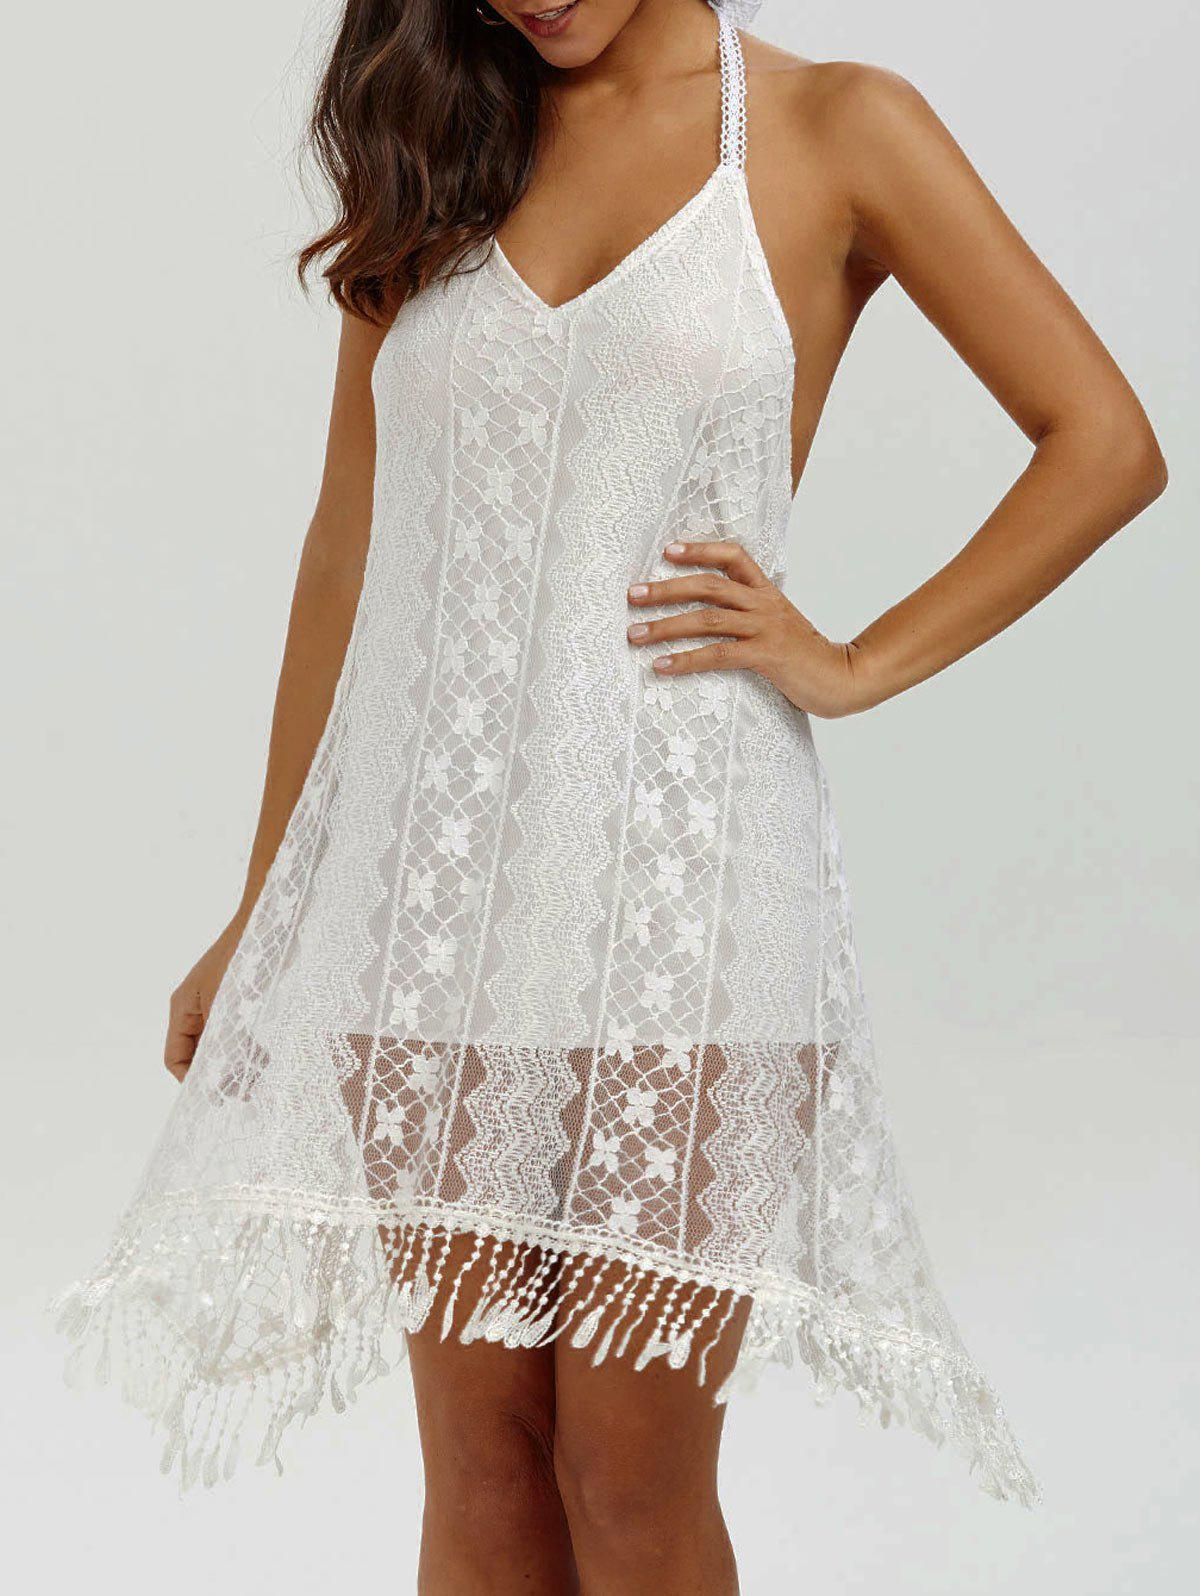 Halter Backless Summer Mini Lace Club Dress - WHITE M